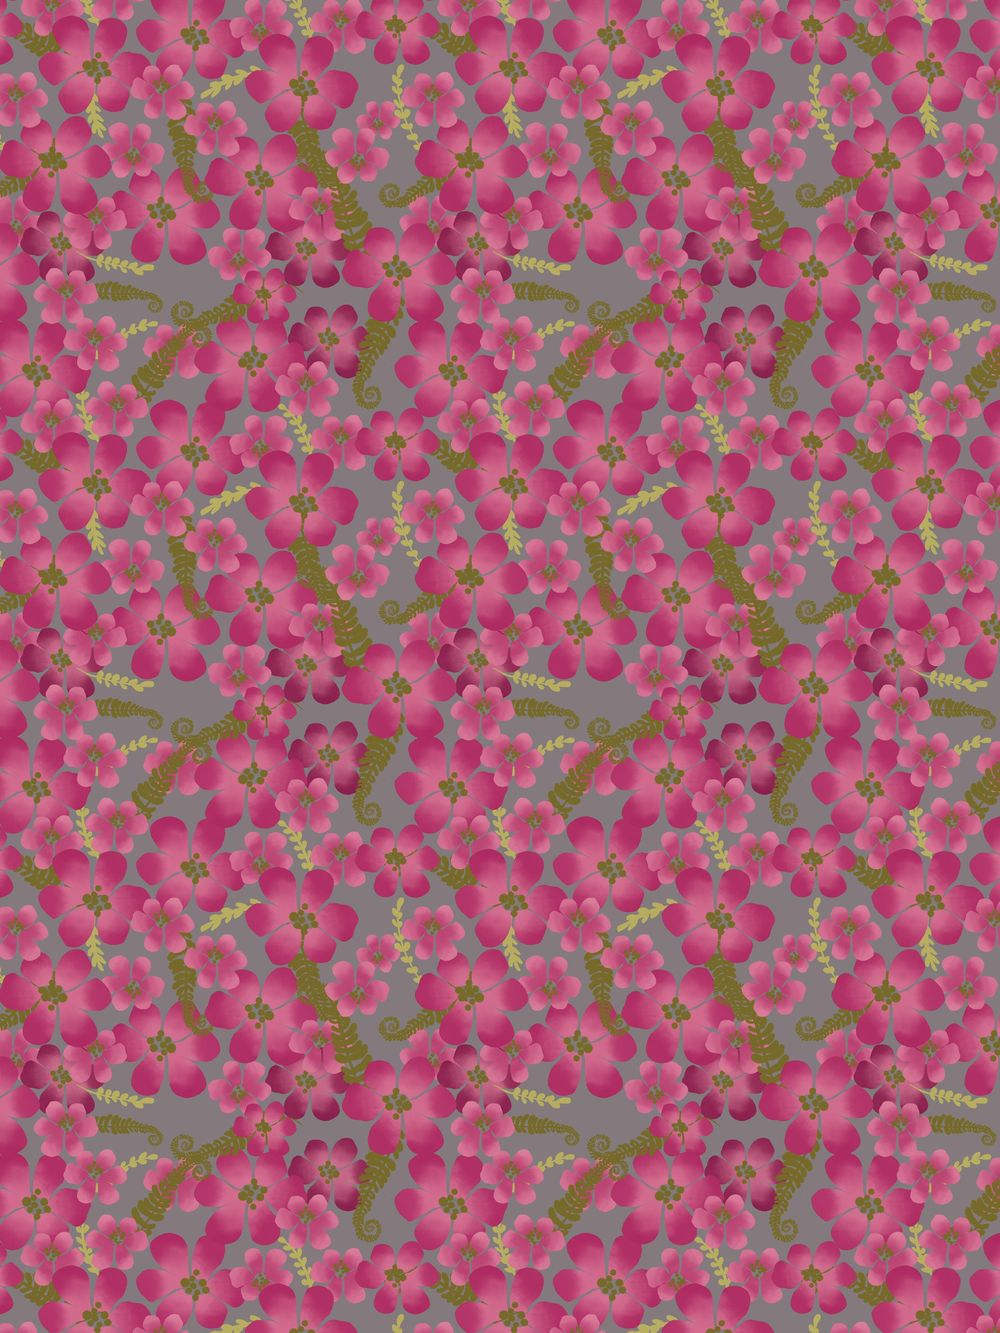 Repeating Pattern - image 1 - student project